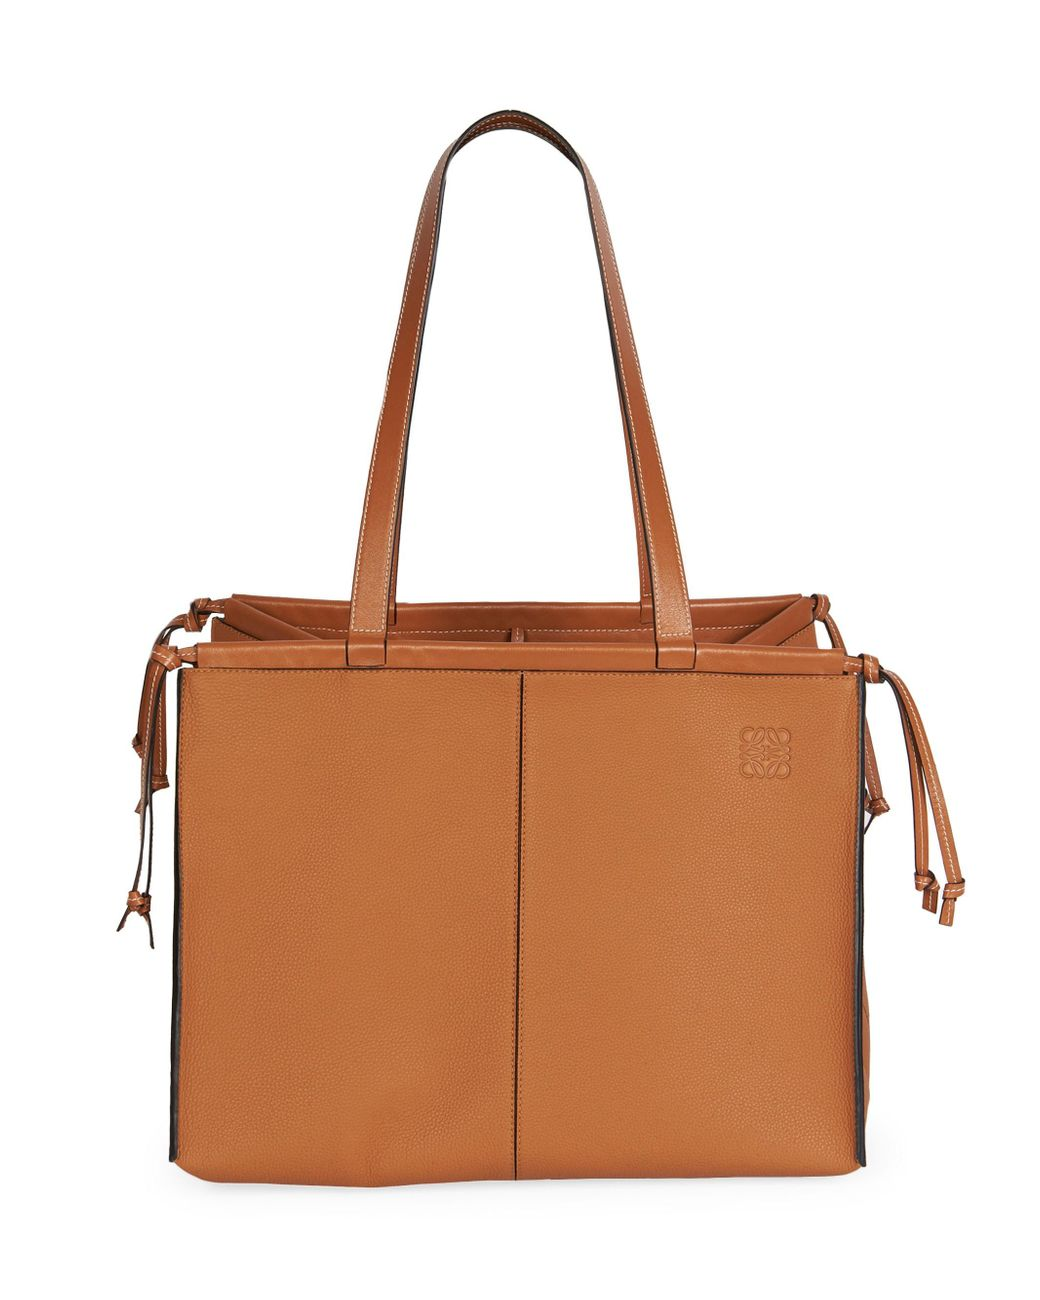 53adc38048b Women's Brown Cushion Leather Tote